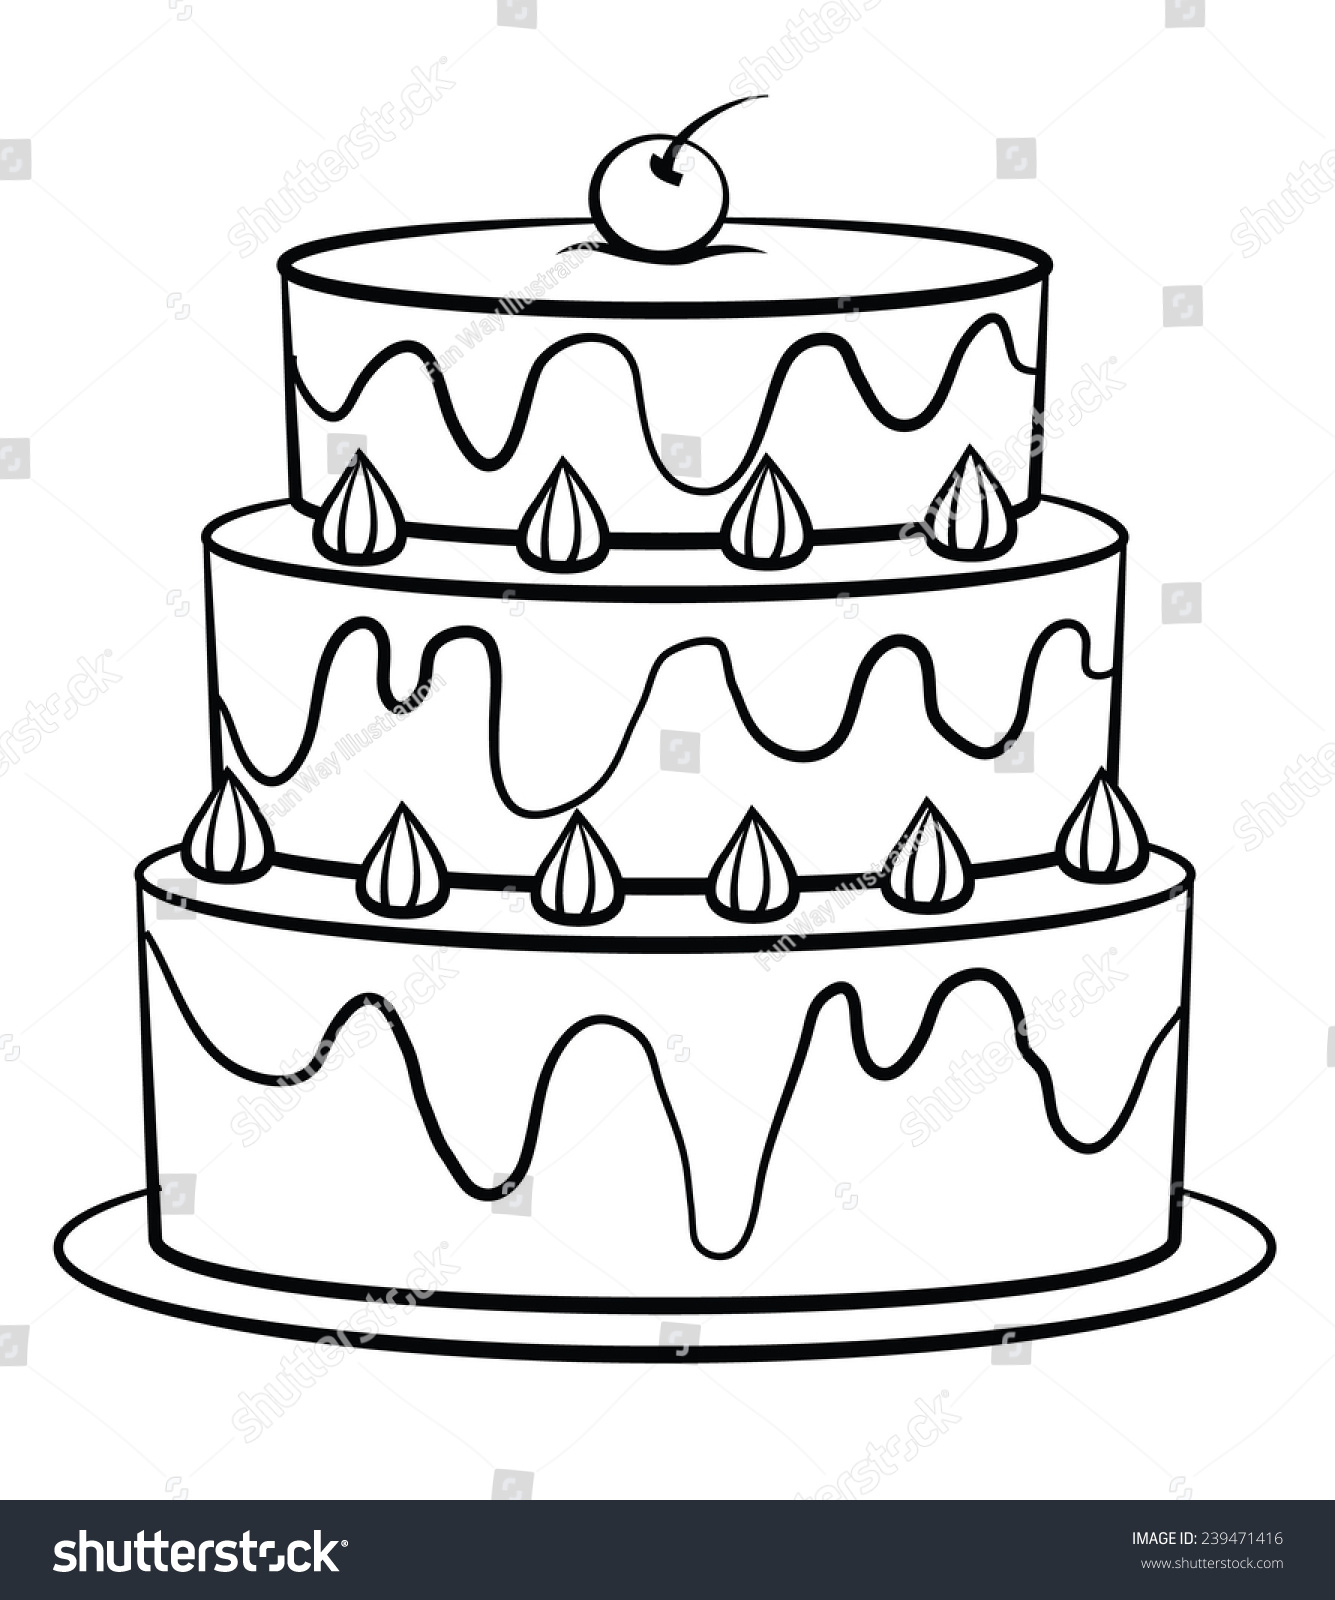 Black And White Birthday Cake Black White Birthday Cake Stock Illustration 239471416 Shutterstock